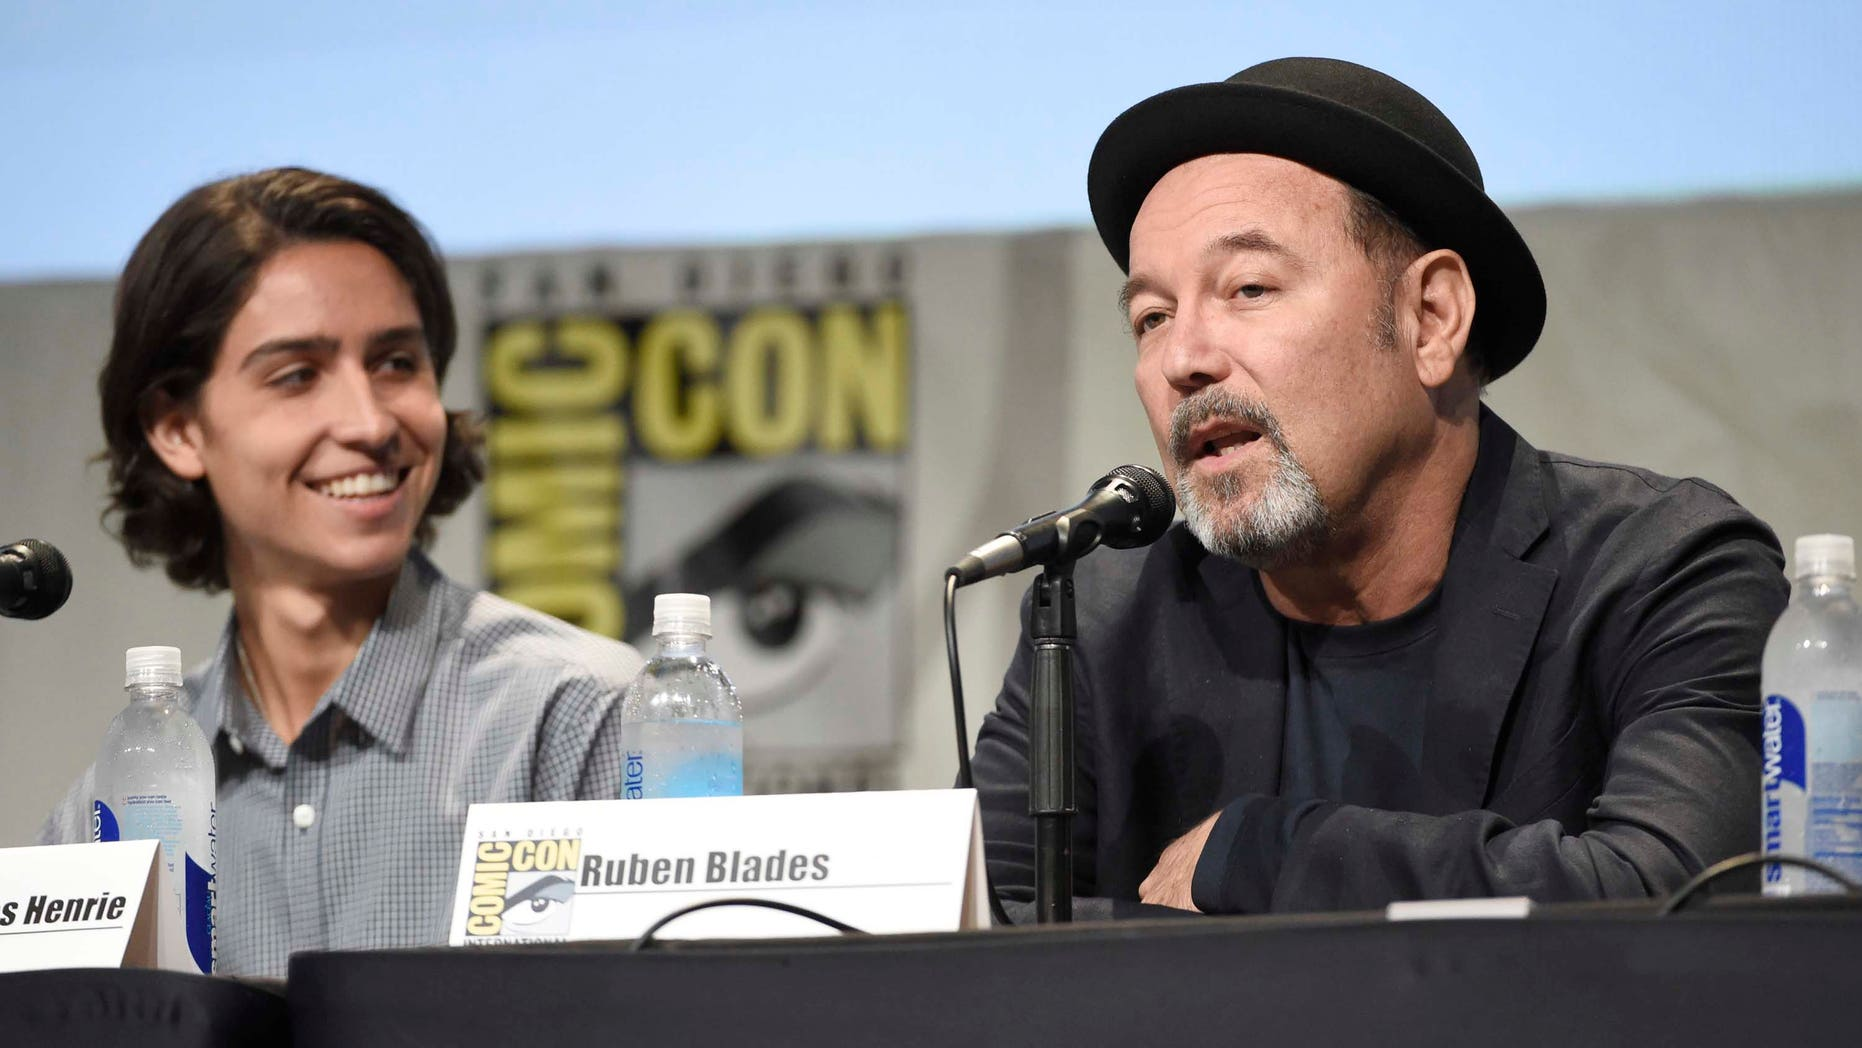 Ruben Blades on day 2 of Comic-Con International on Friday, July 10, 2015, in San Diego, Calif.